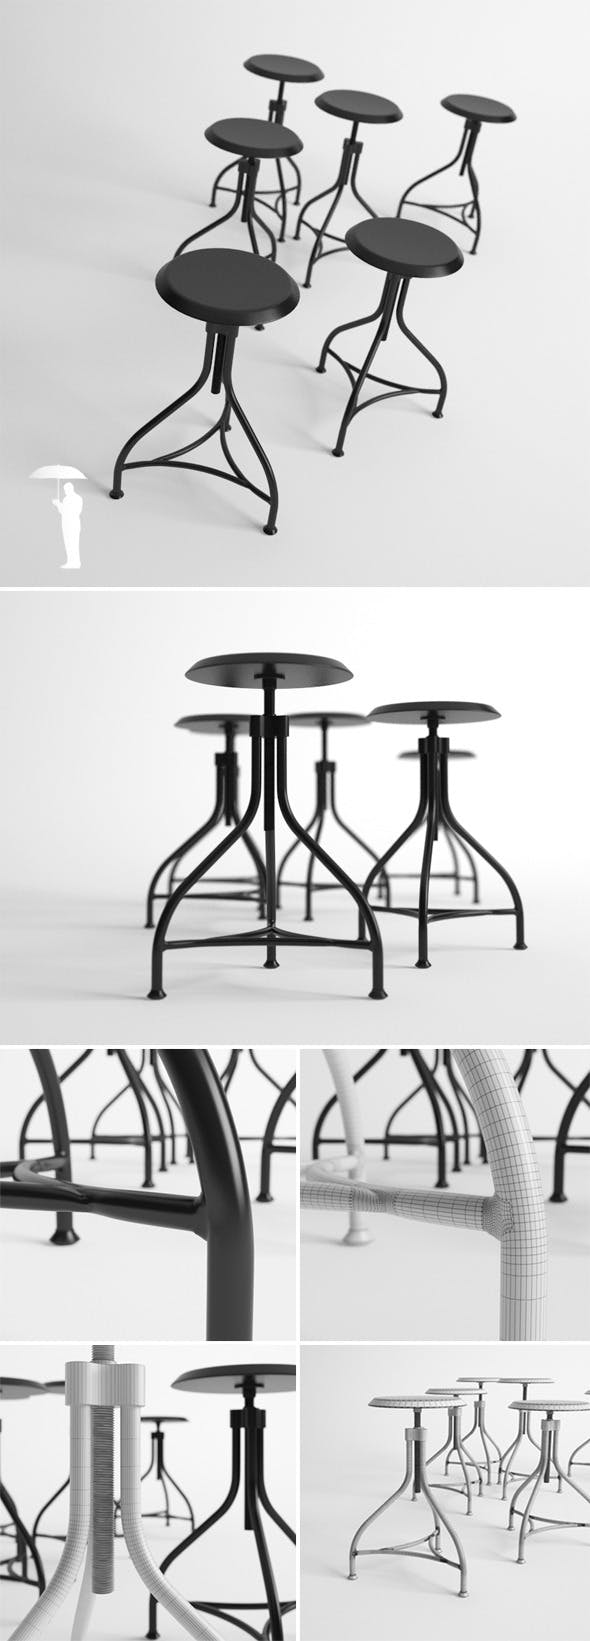 Piano stool - 3DOcean Item for Sale